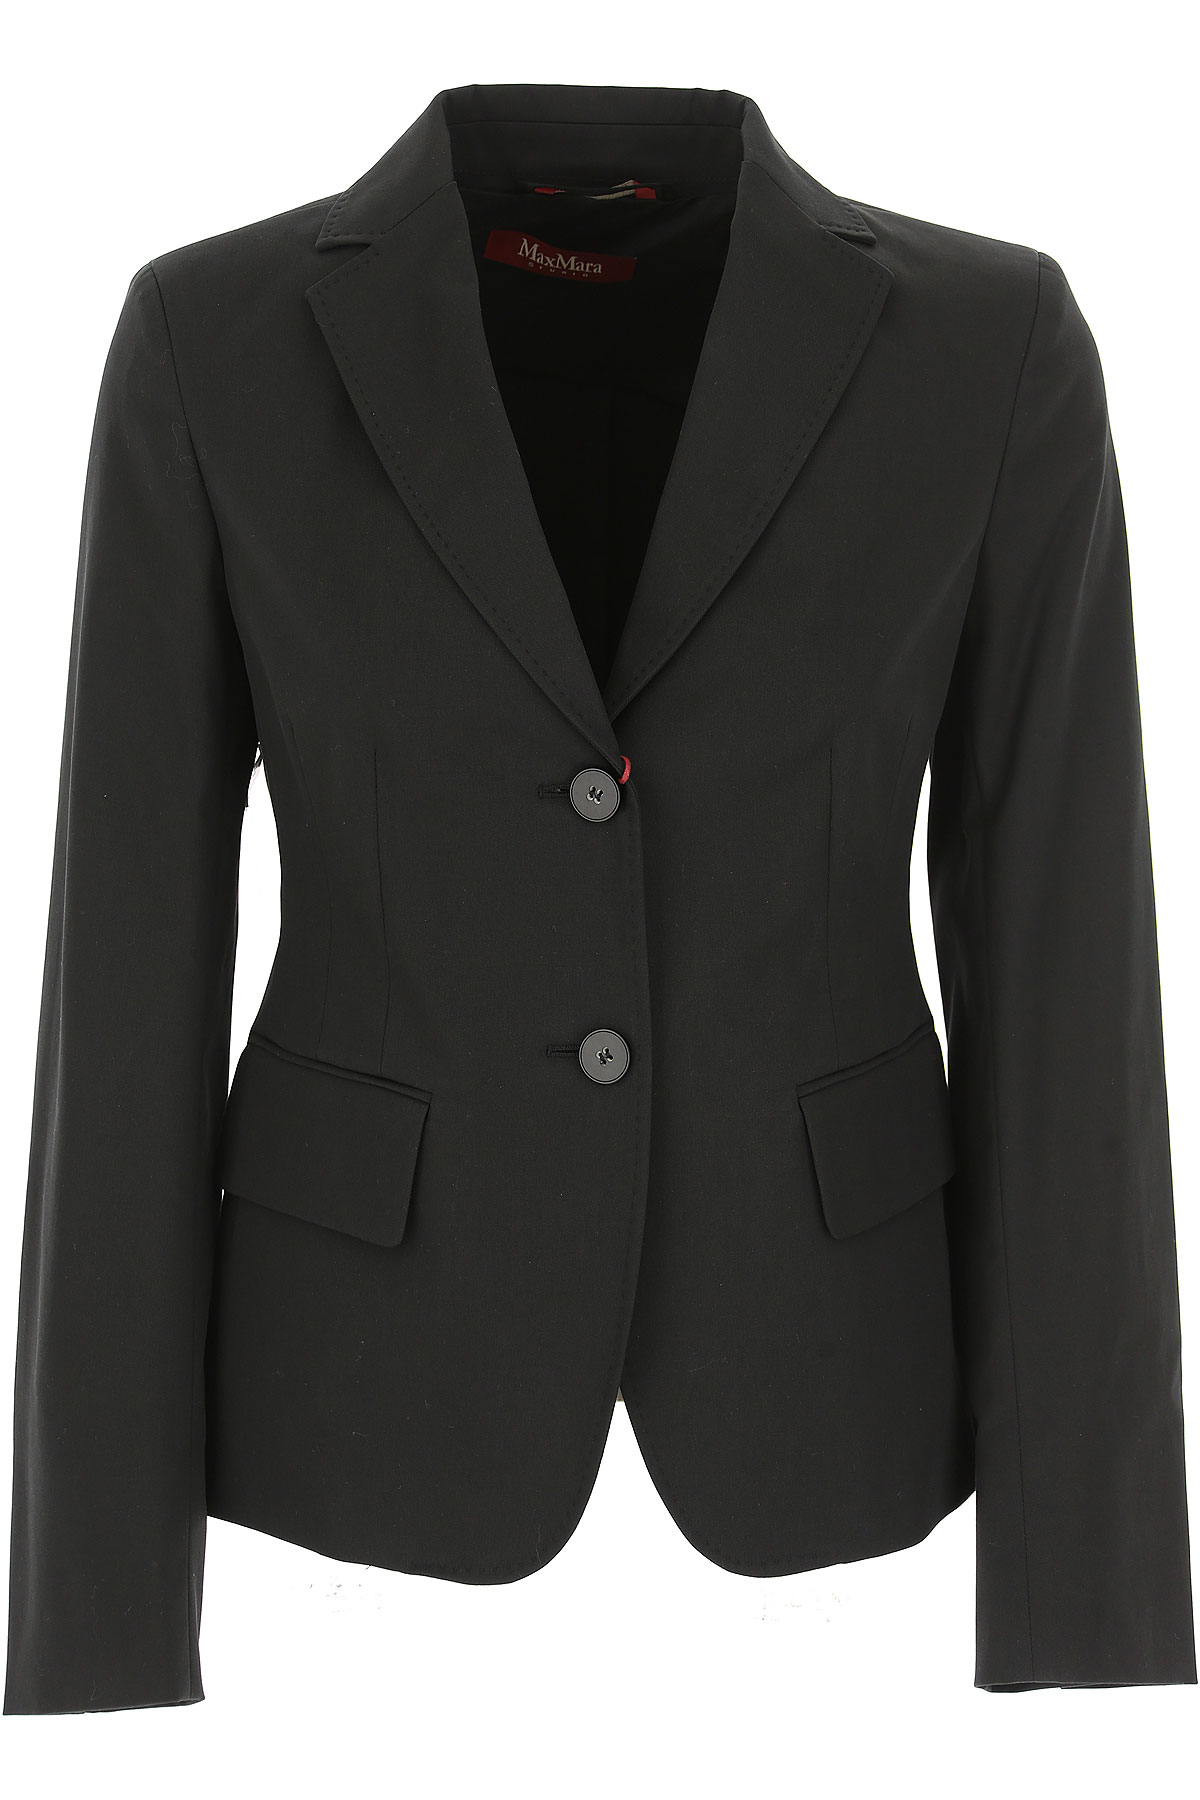 Image of Weekend by Max Mara Blazer for Women On Sale, Black, Cotton, 2017, 4 8